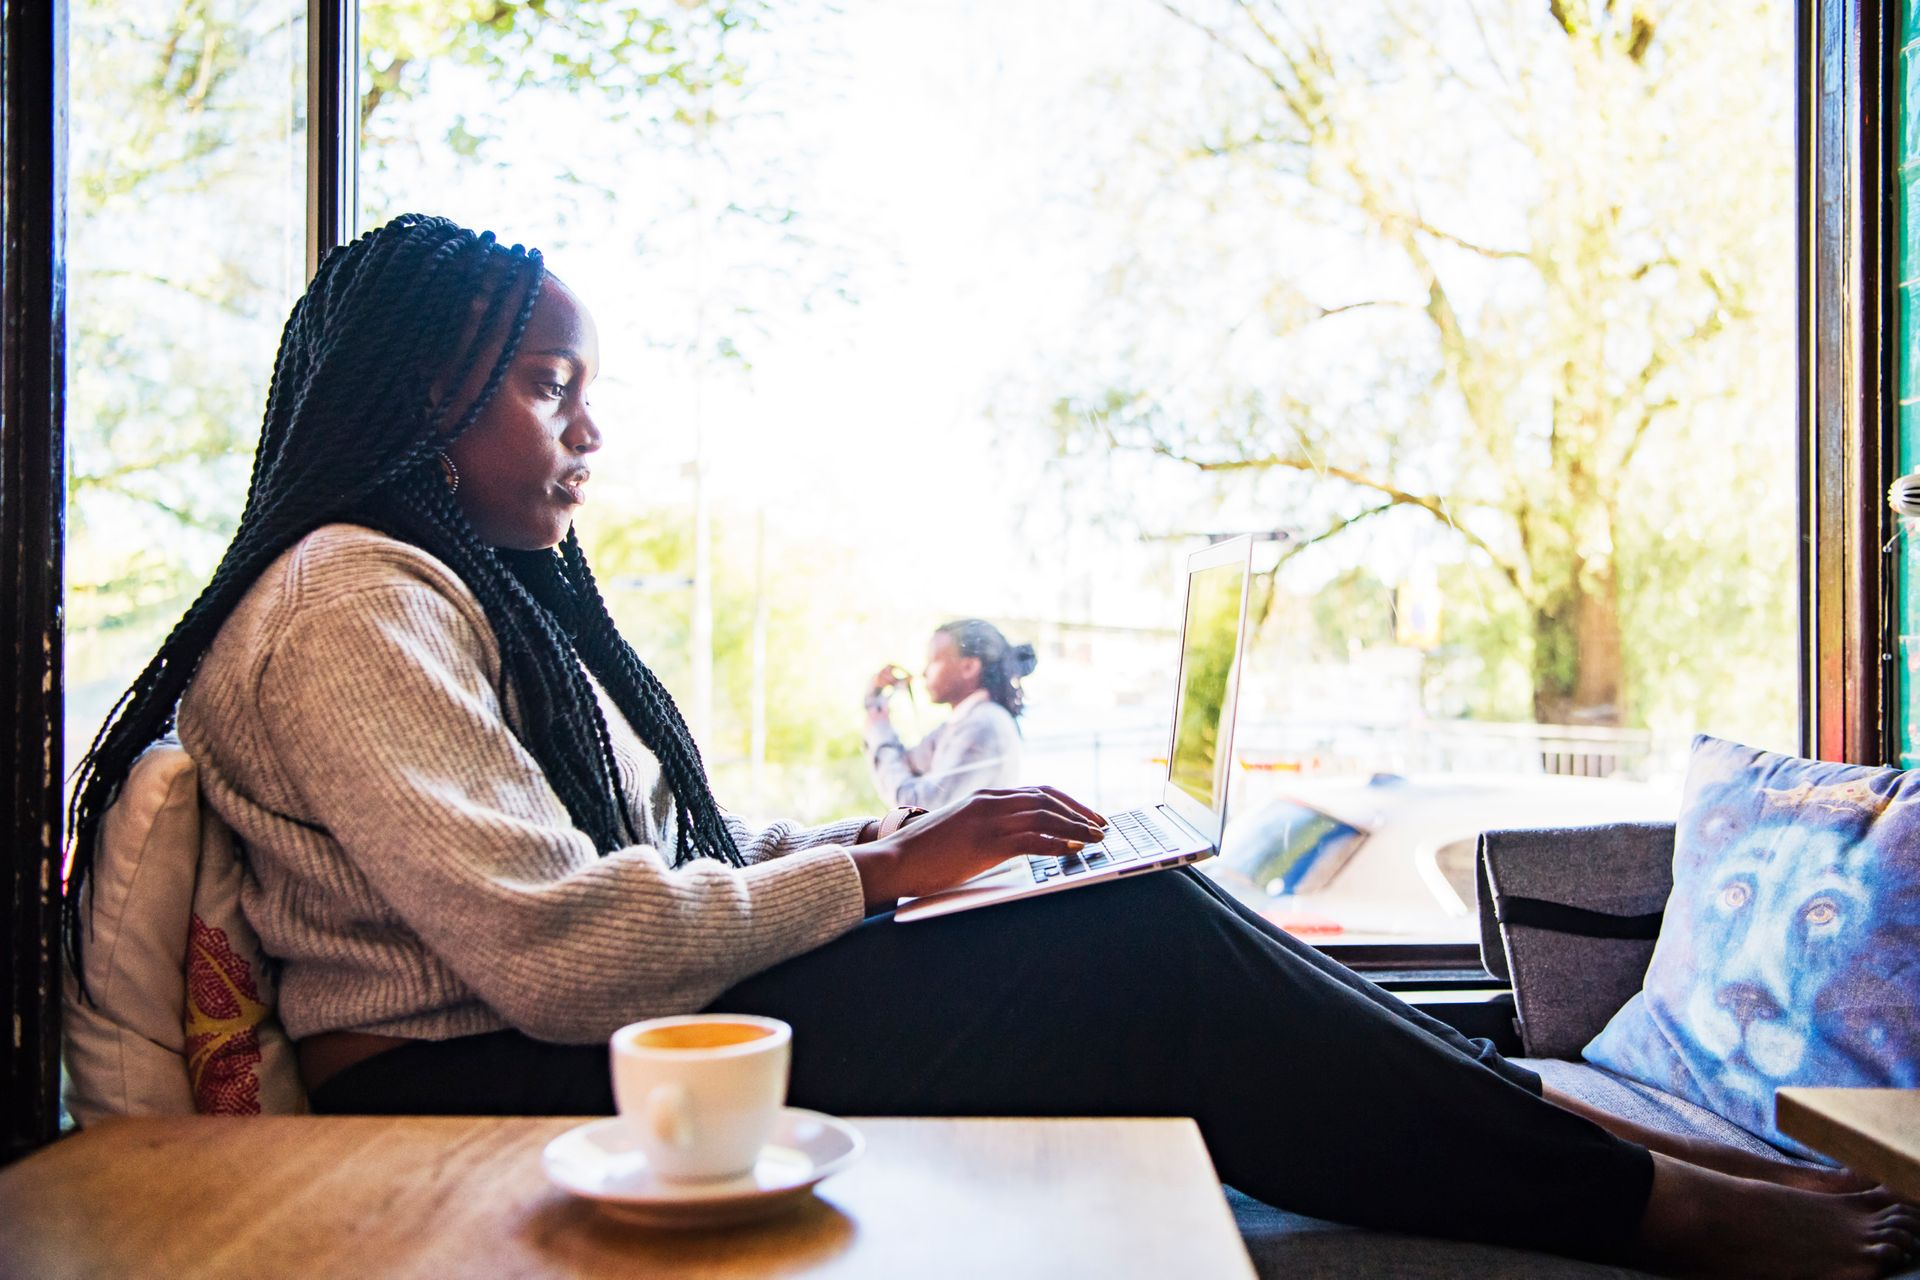 A woman is sitting inside by a window with a cup of coffee, typing on a laptop in her lap.